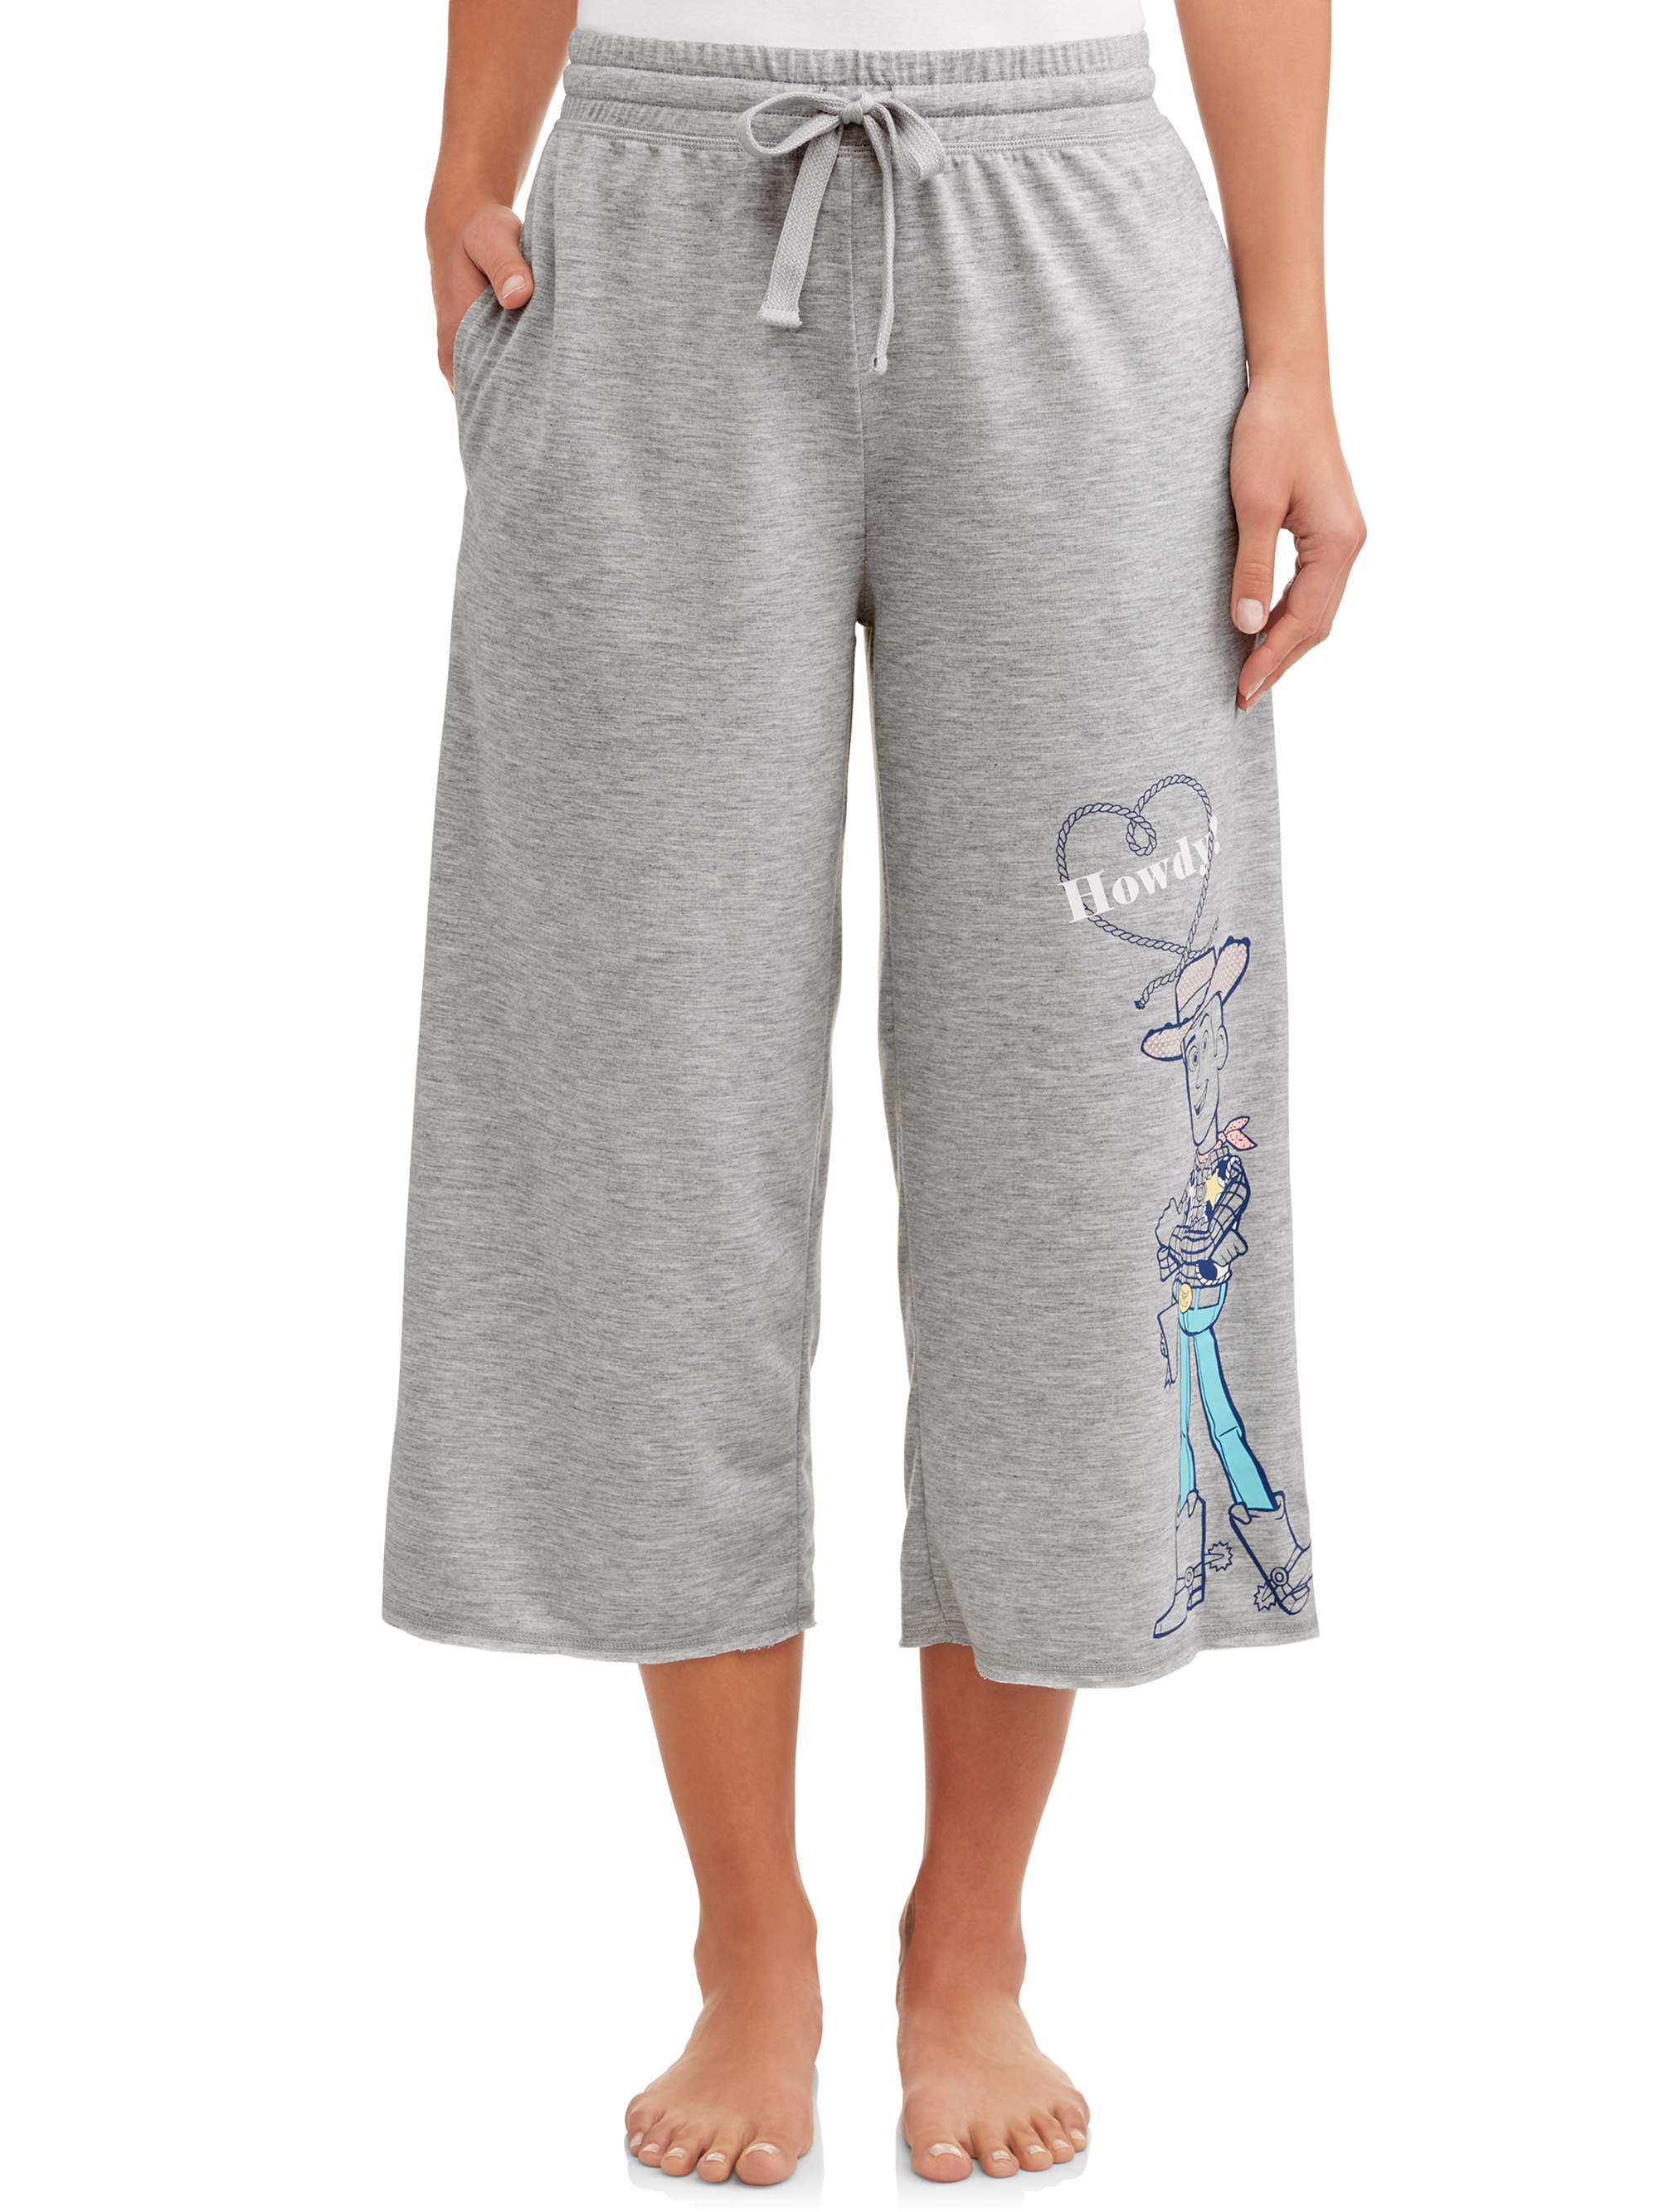 Disney Women's and Women's Plus License Pant Toy Story